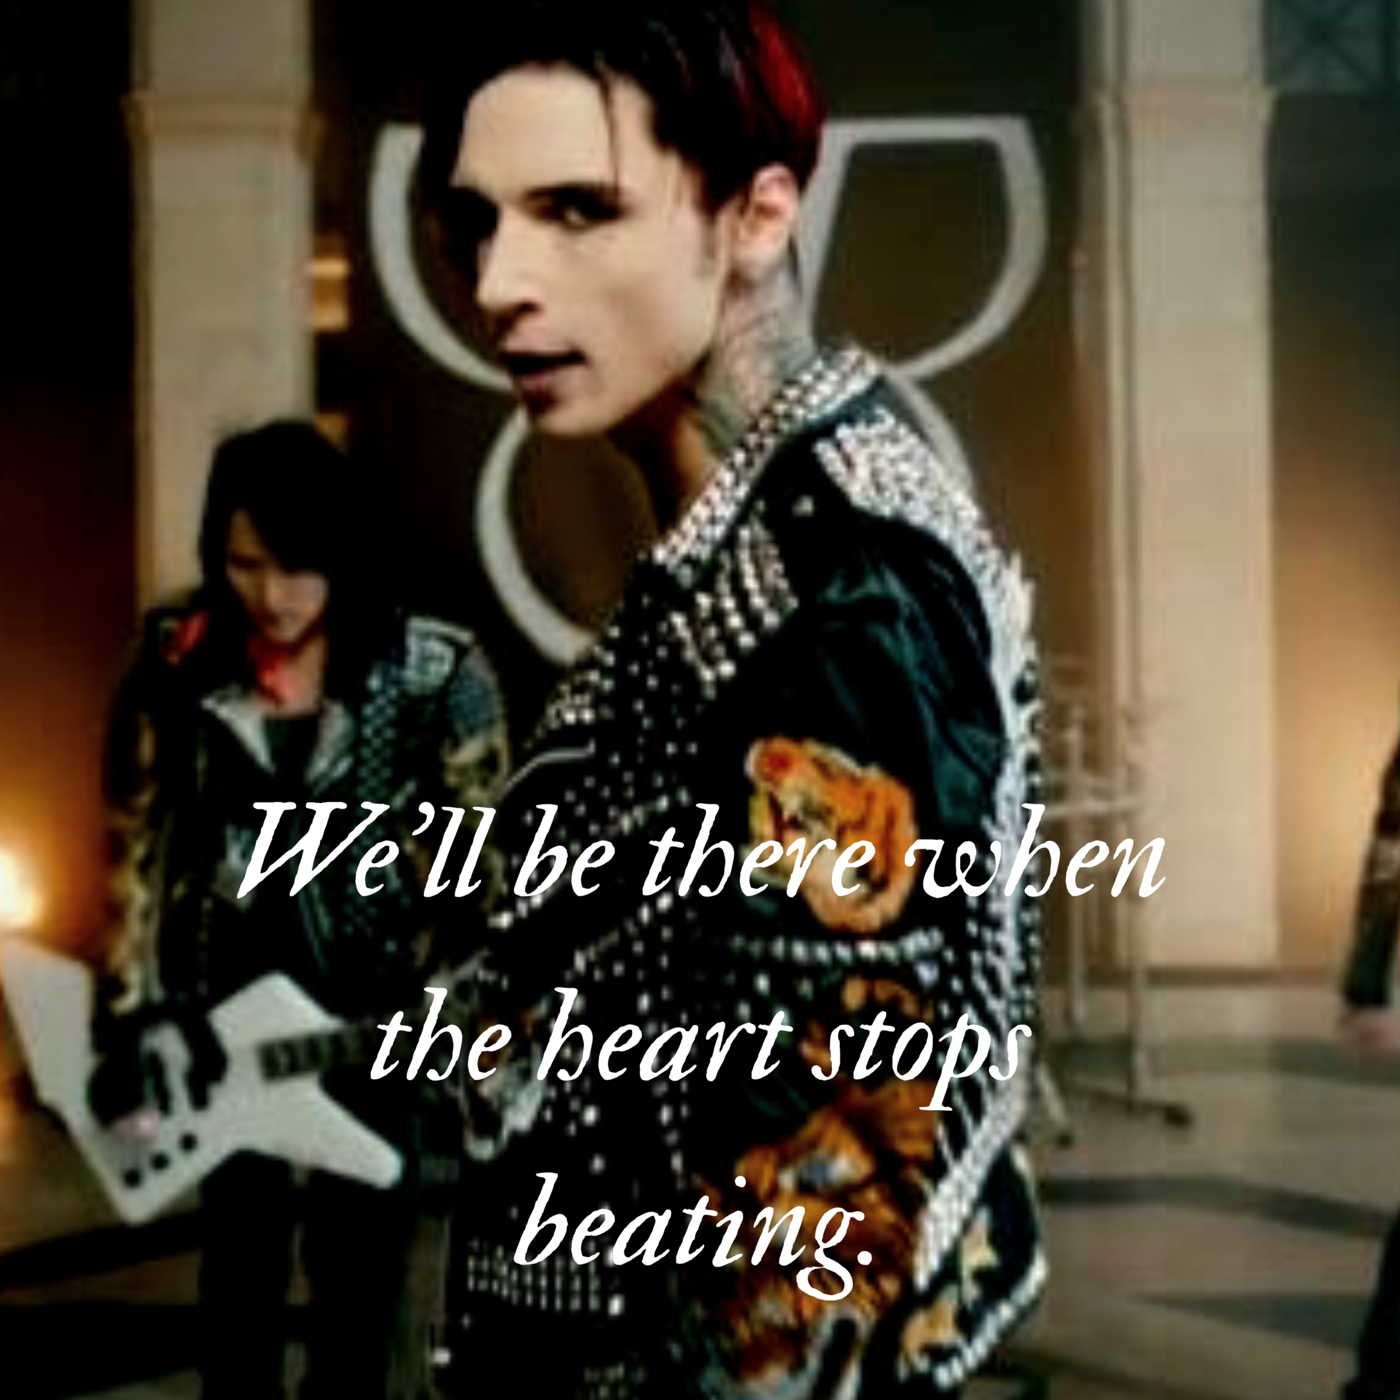 Black veil brides tattoo ideas weull be there when the heart stops beating